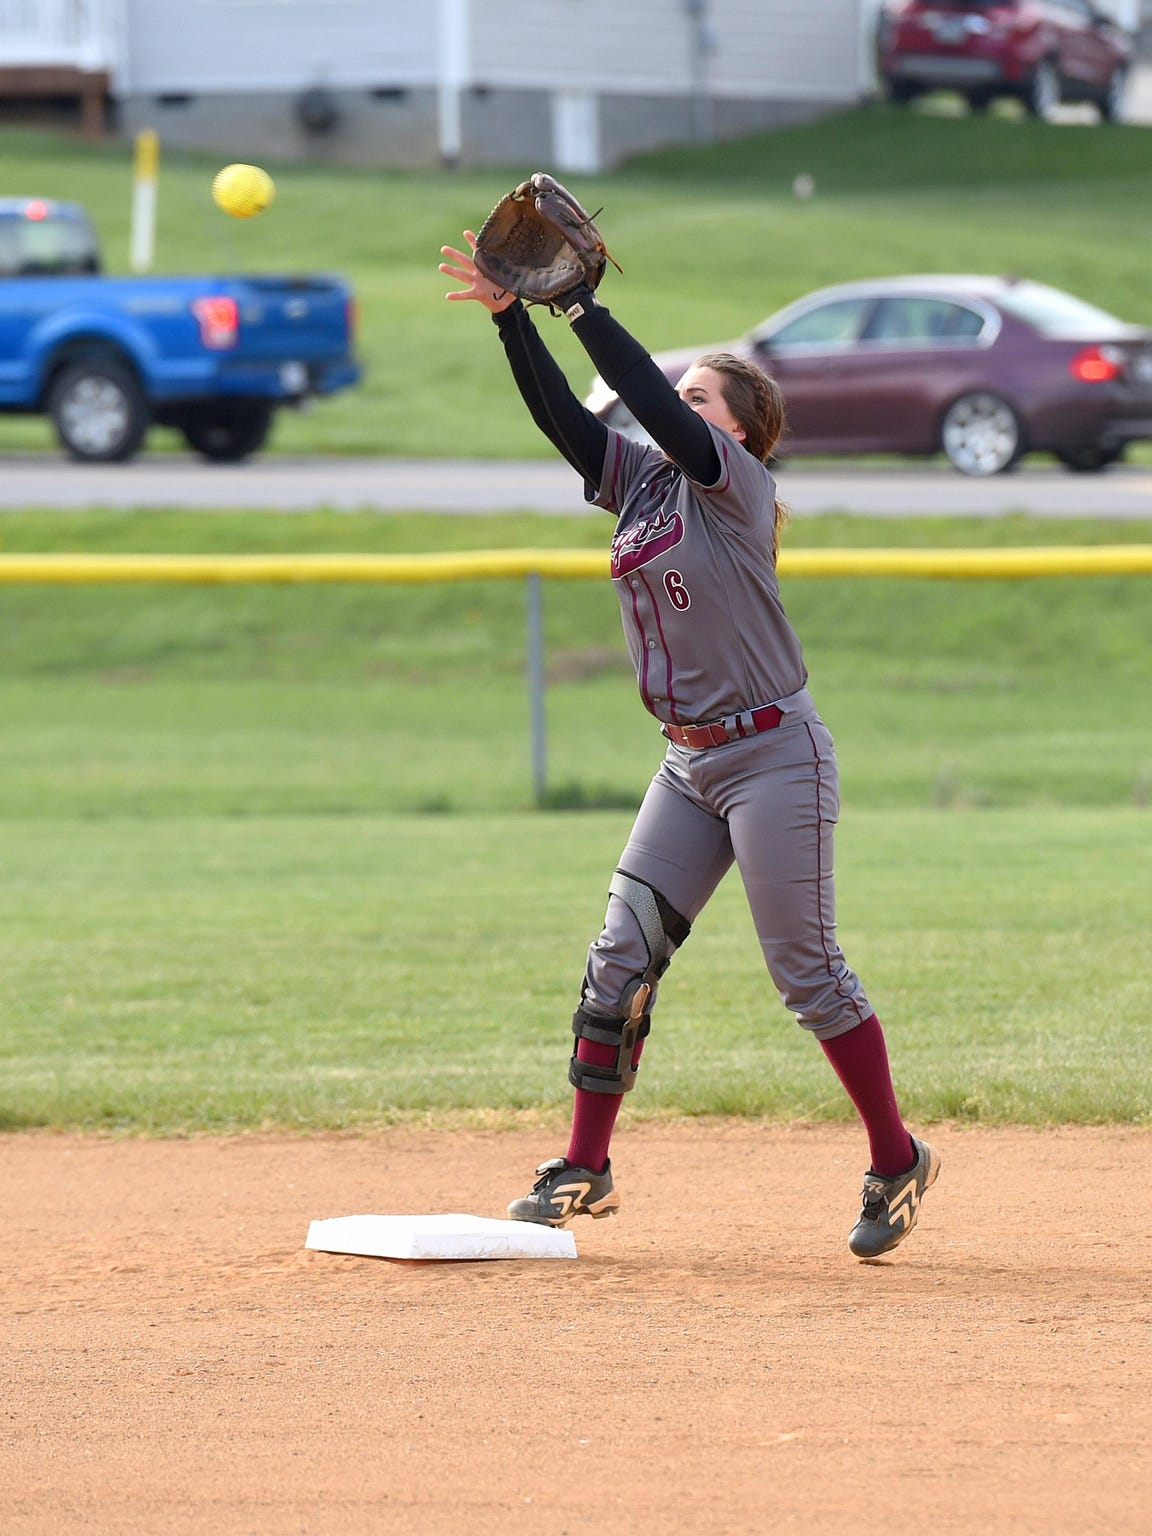 Stuarts Draft's Kayley Campbell catches a throw at second base while warming up during a softball game played in Waynesboro against Waynesboro High School on April 6, 2016.